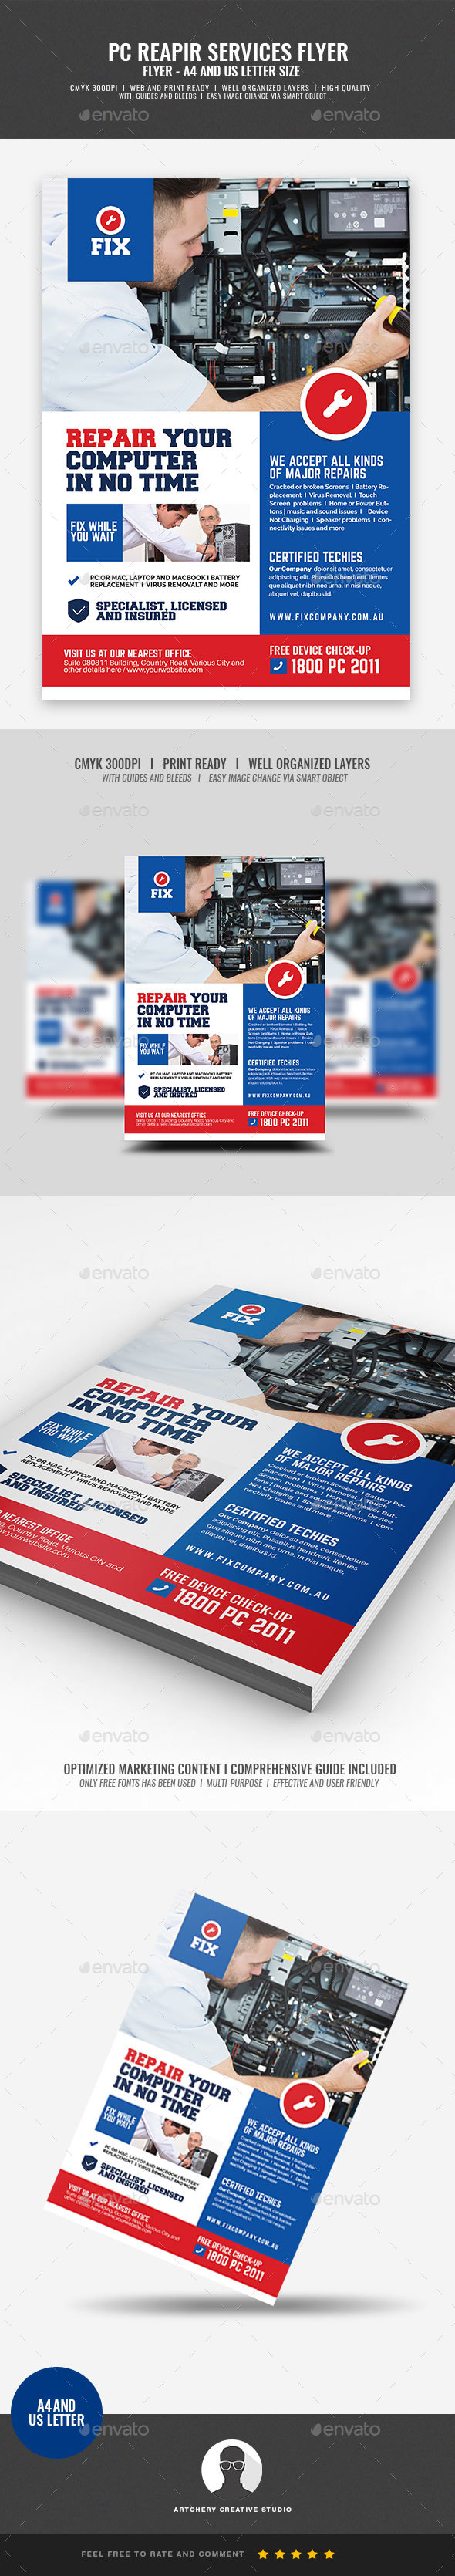 Computer Repair and Maintenance Flyer - Commerce Flyers